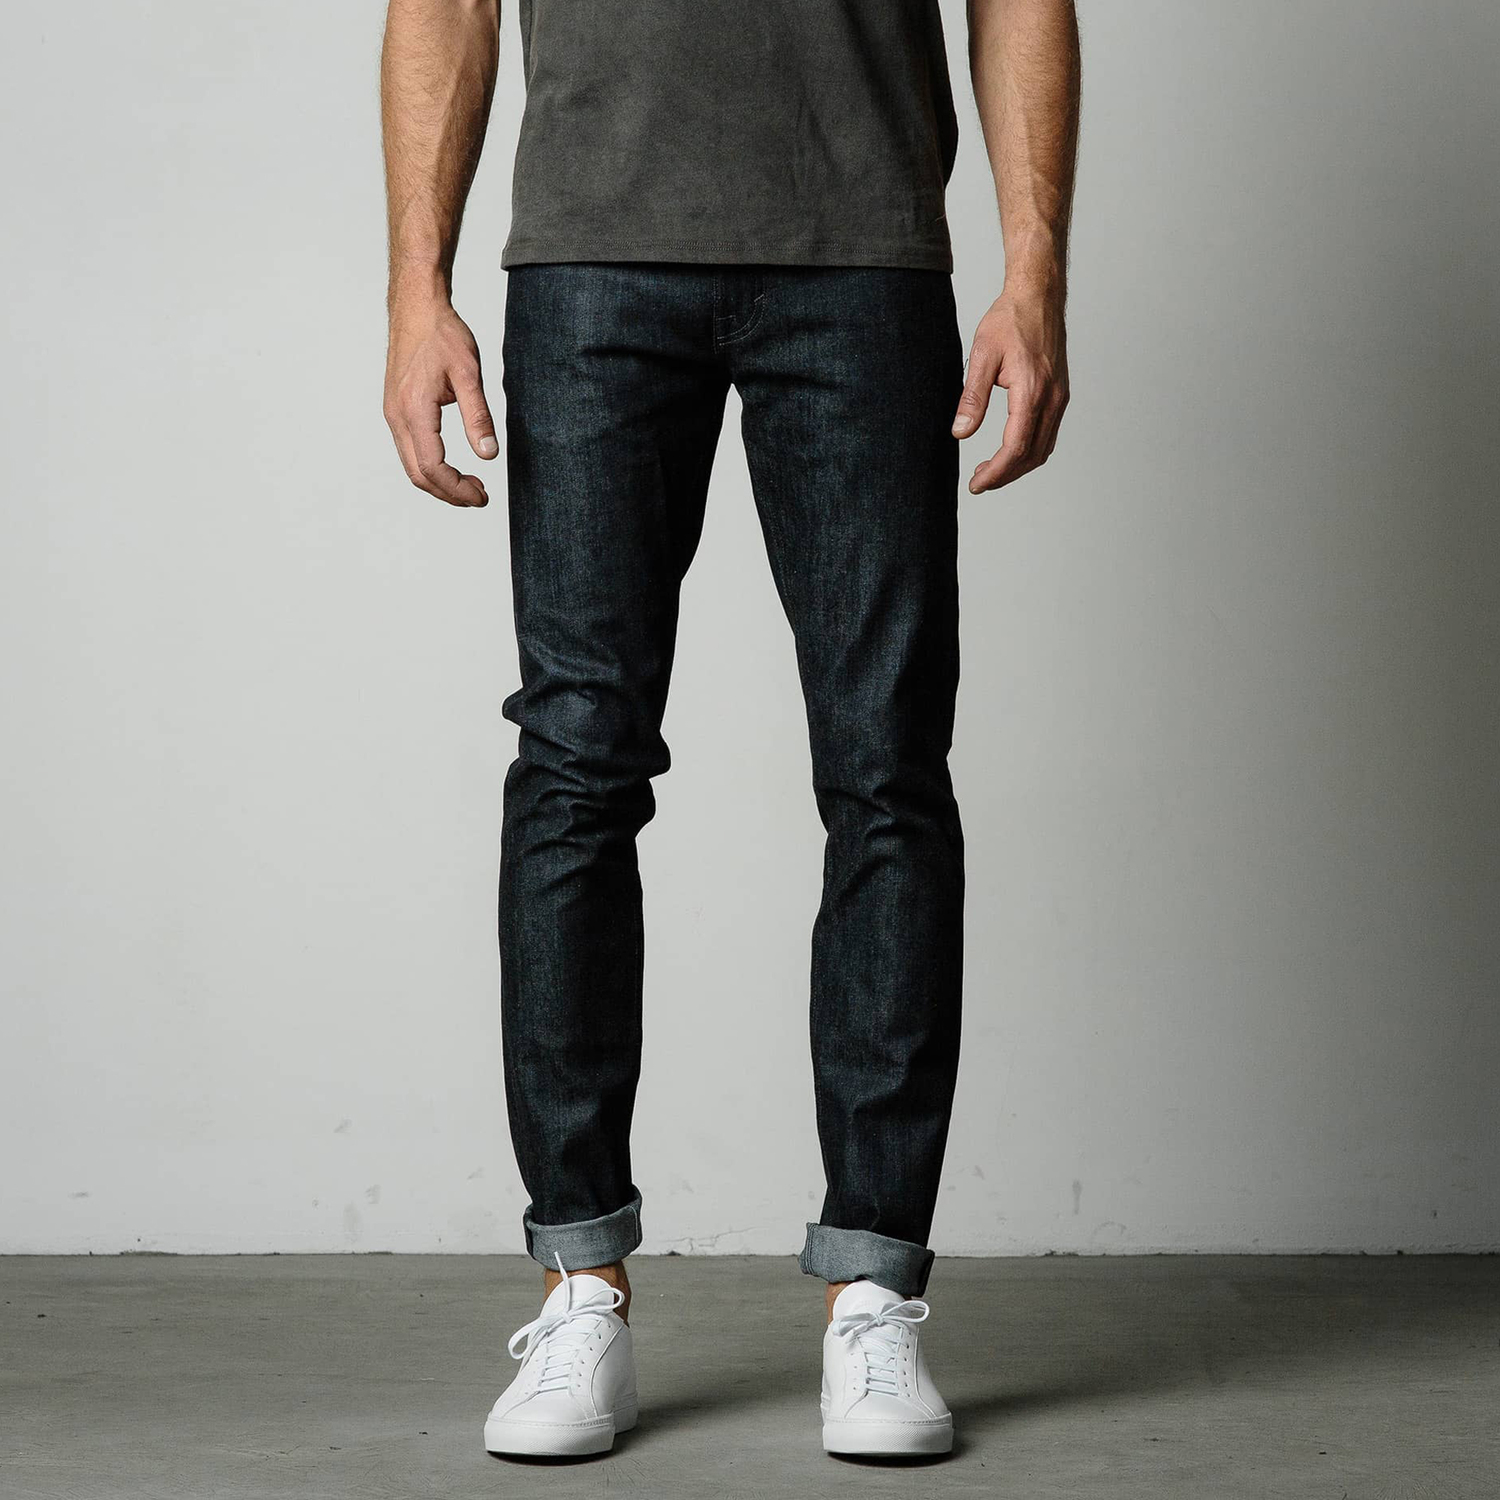 Excellent dark blue raw Gustin denim with button front closure and skinny cut. These jeans are perfect to dress up or down. 7 - Item is